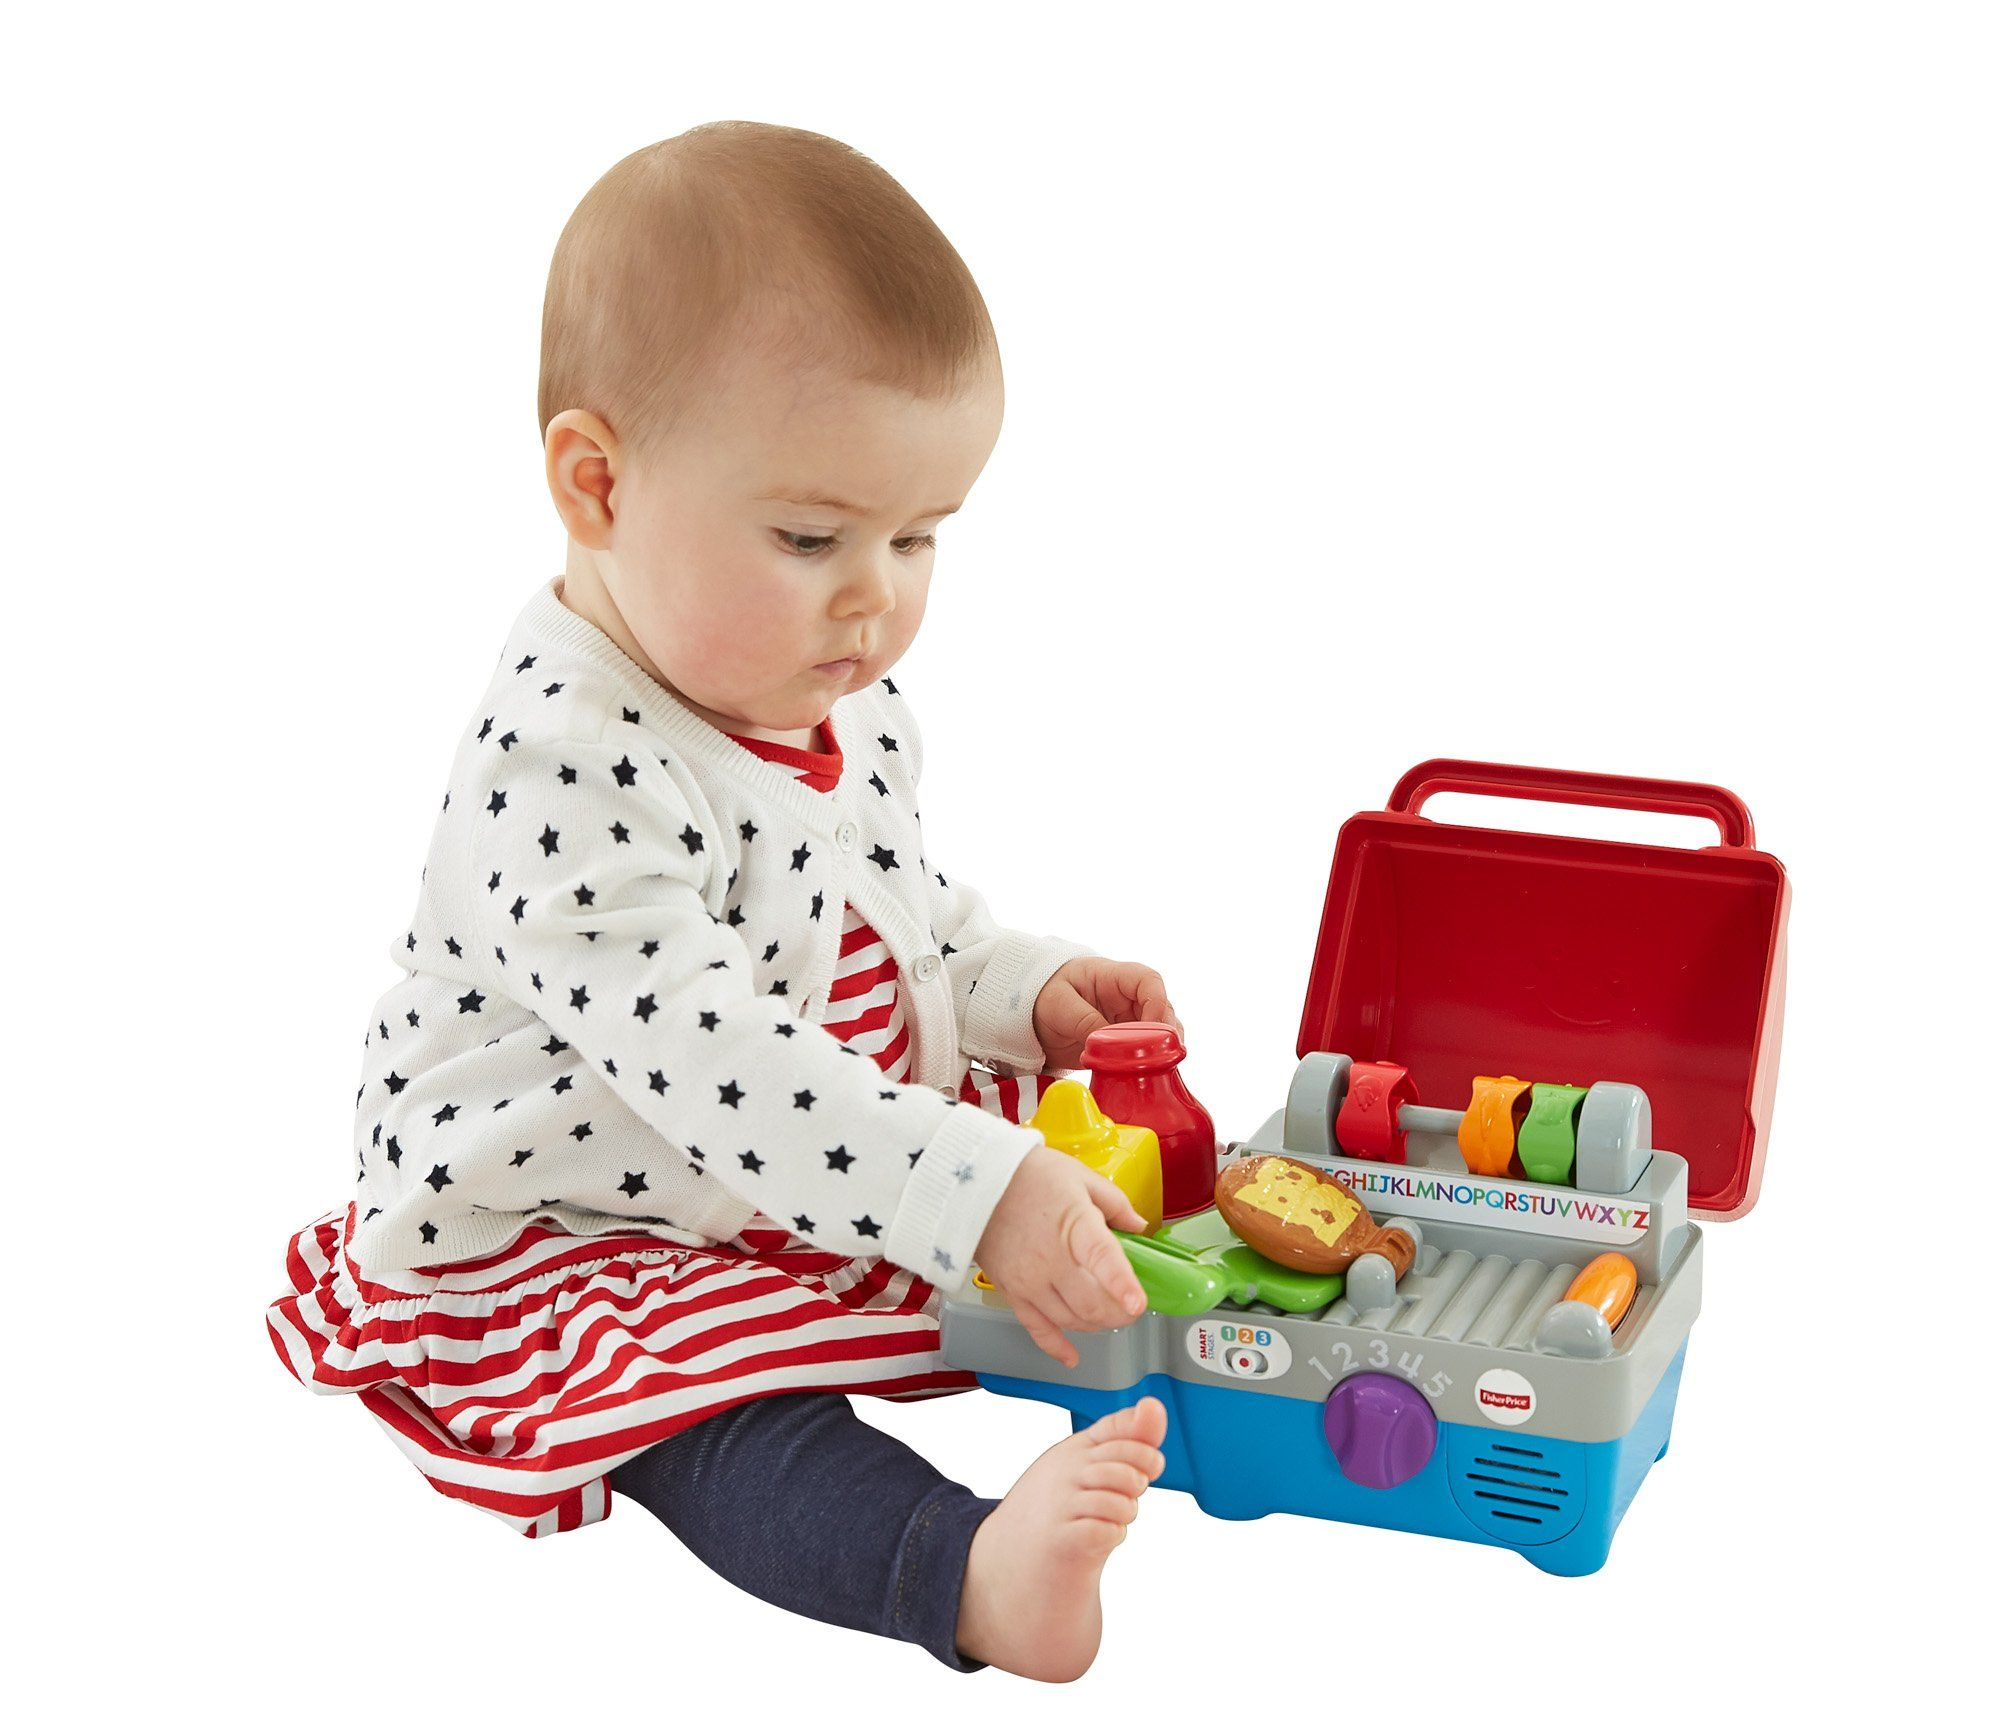 Fisherprice laugh learn smart stages grill includes